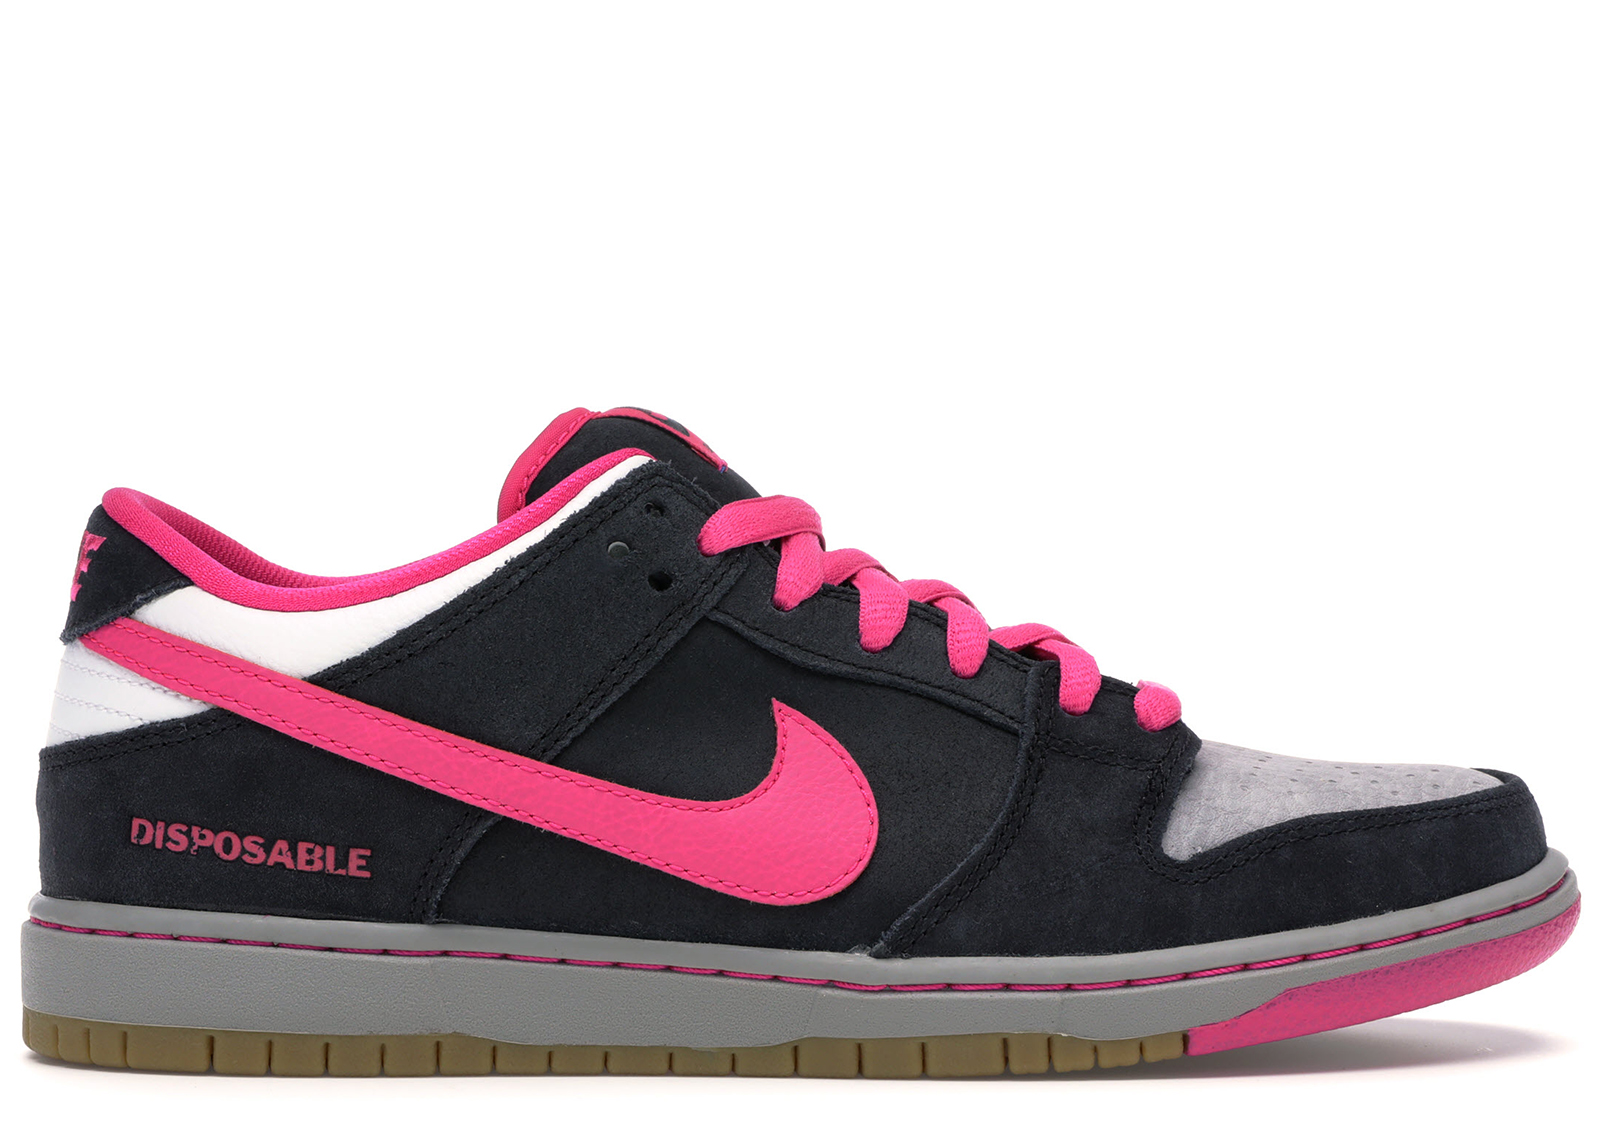 Pre-Owned Nike Dunk Sb Low Disposable